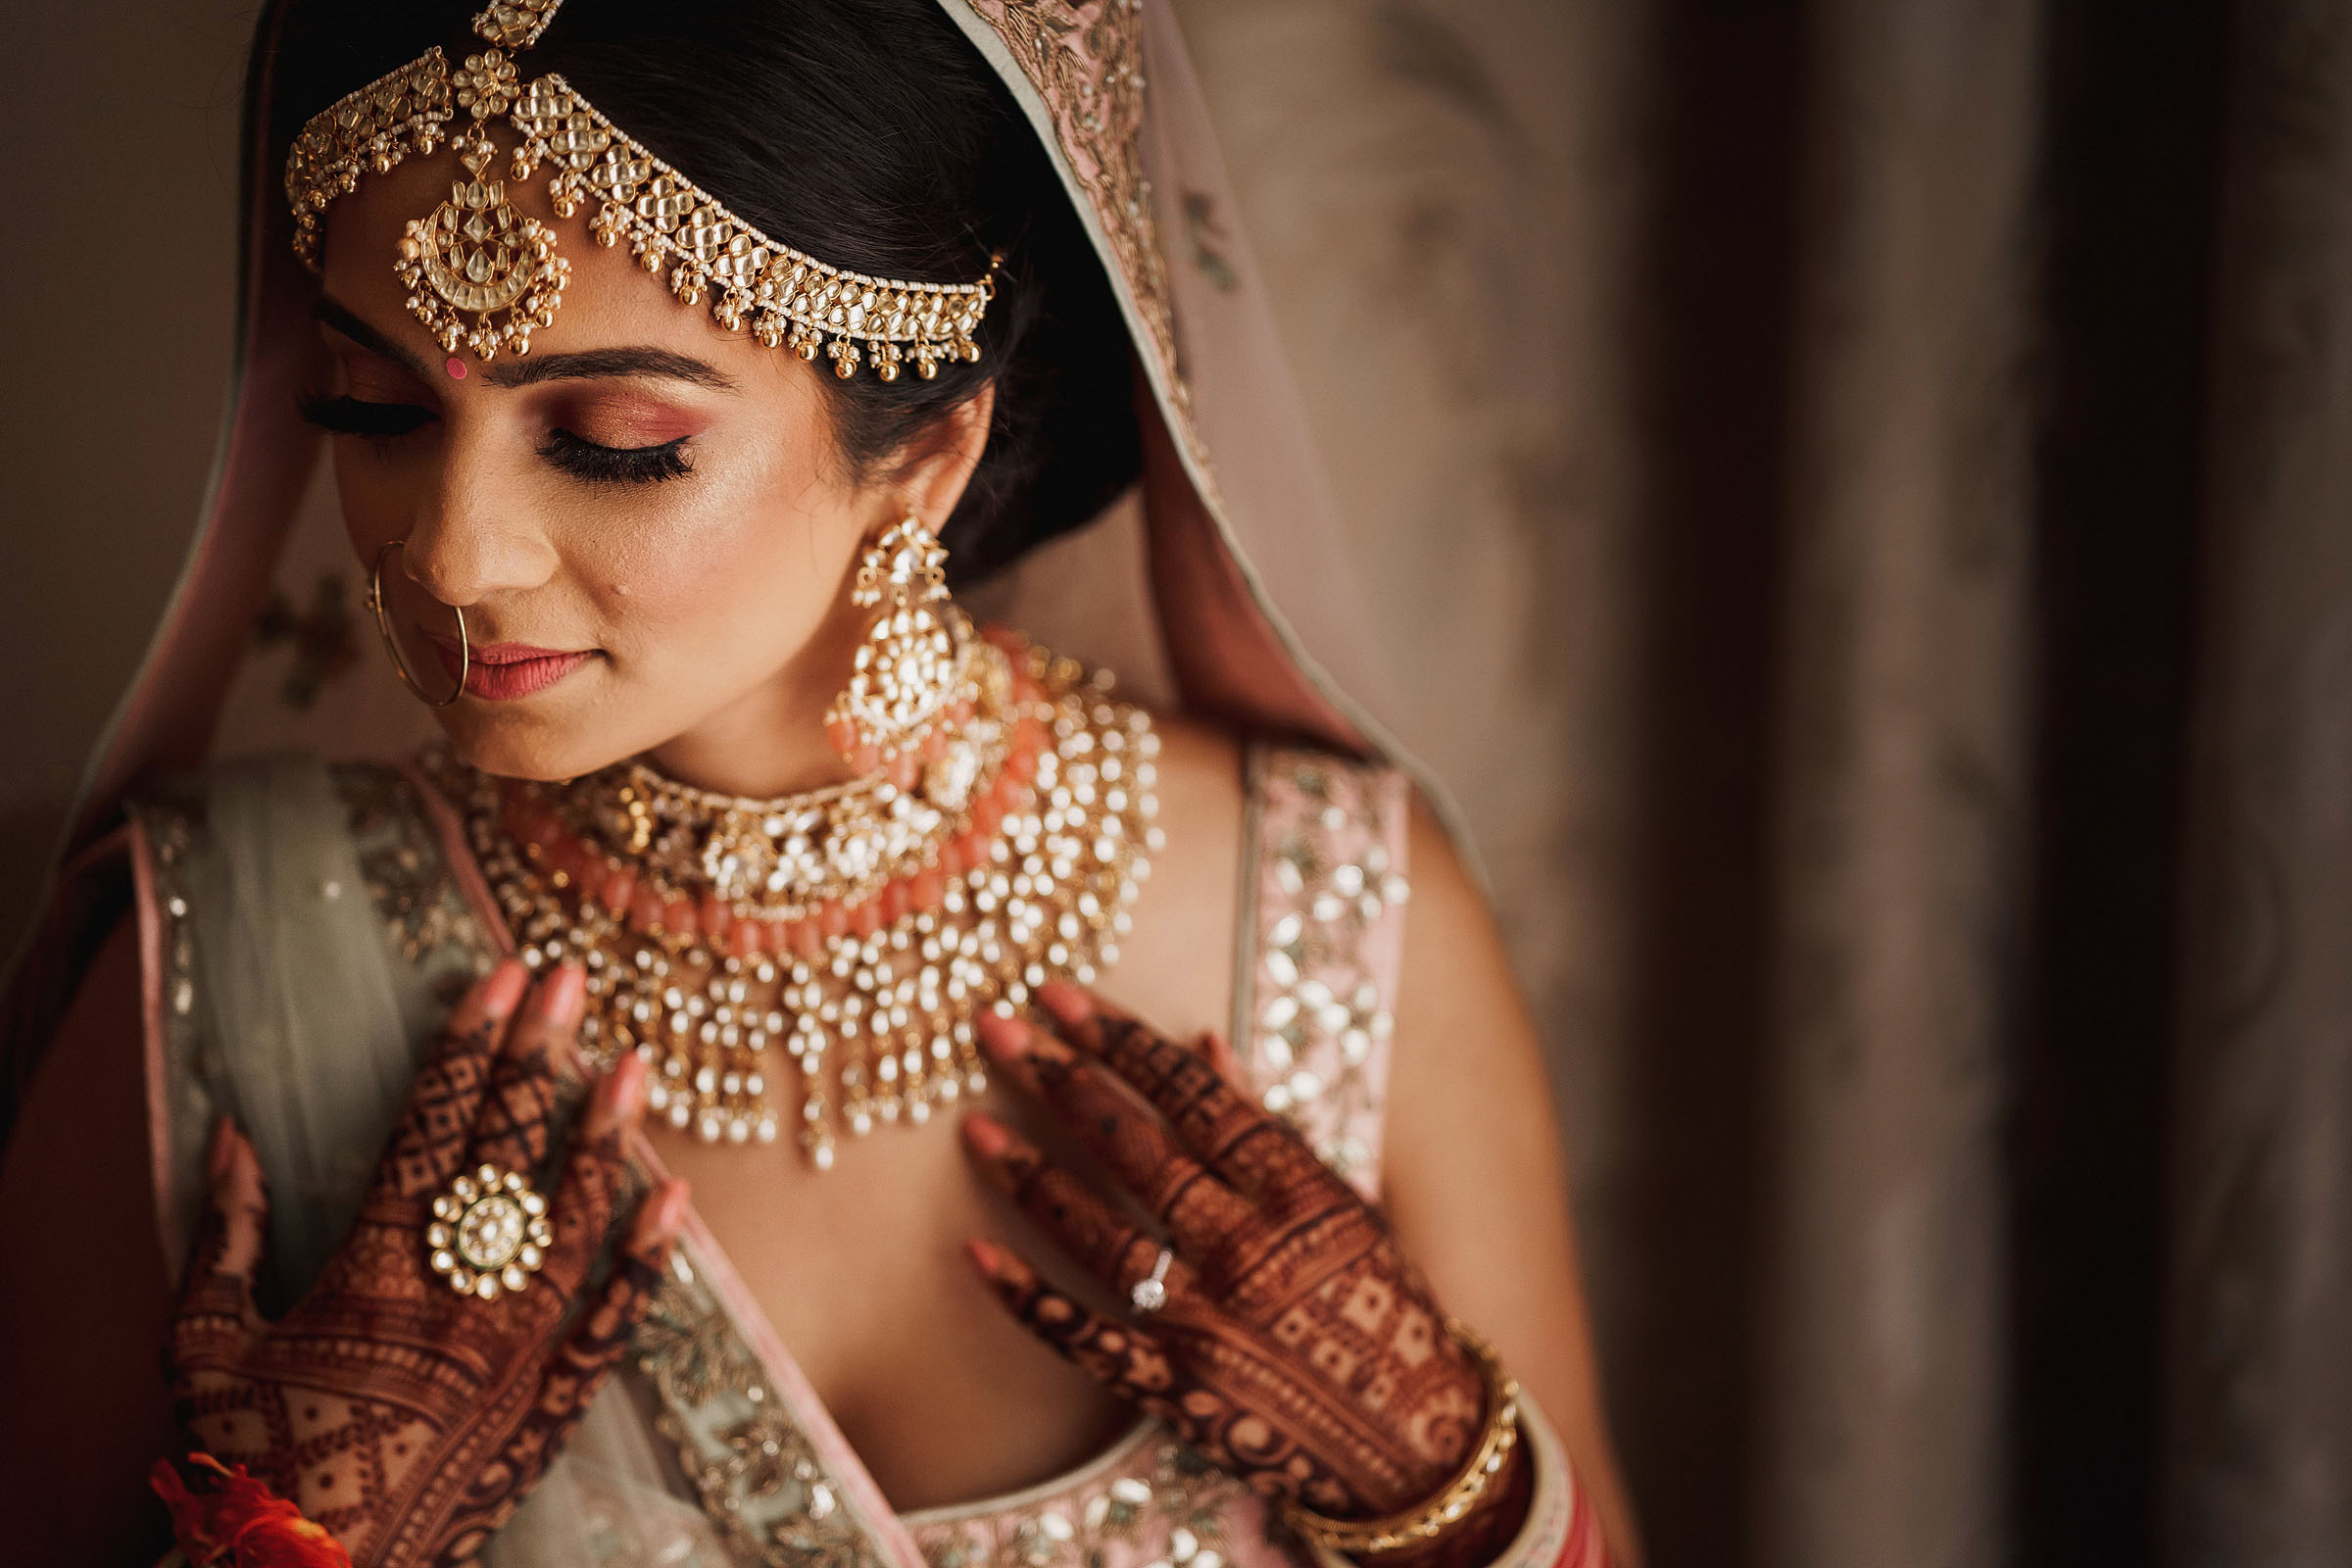 Indian woman with silver jewelry and henna hands - photo by F5 Photography